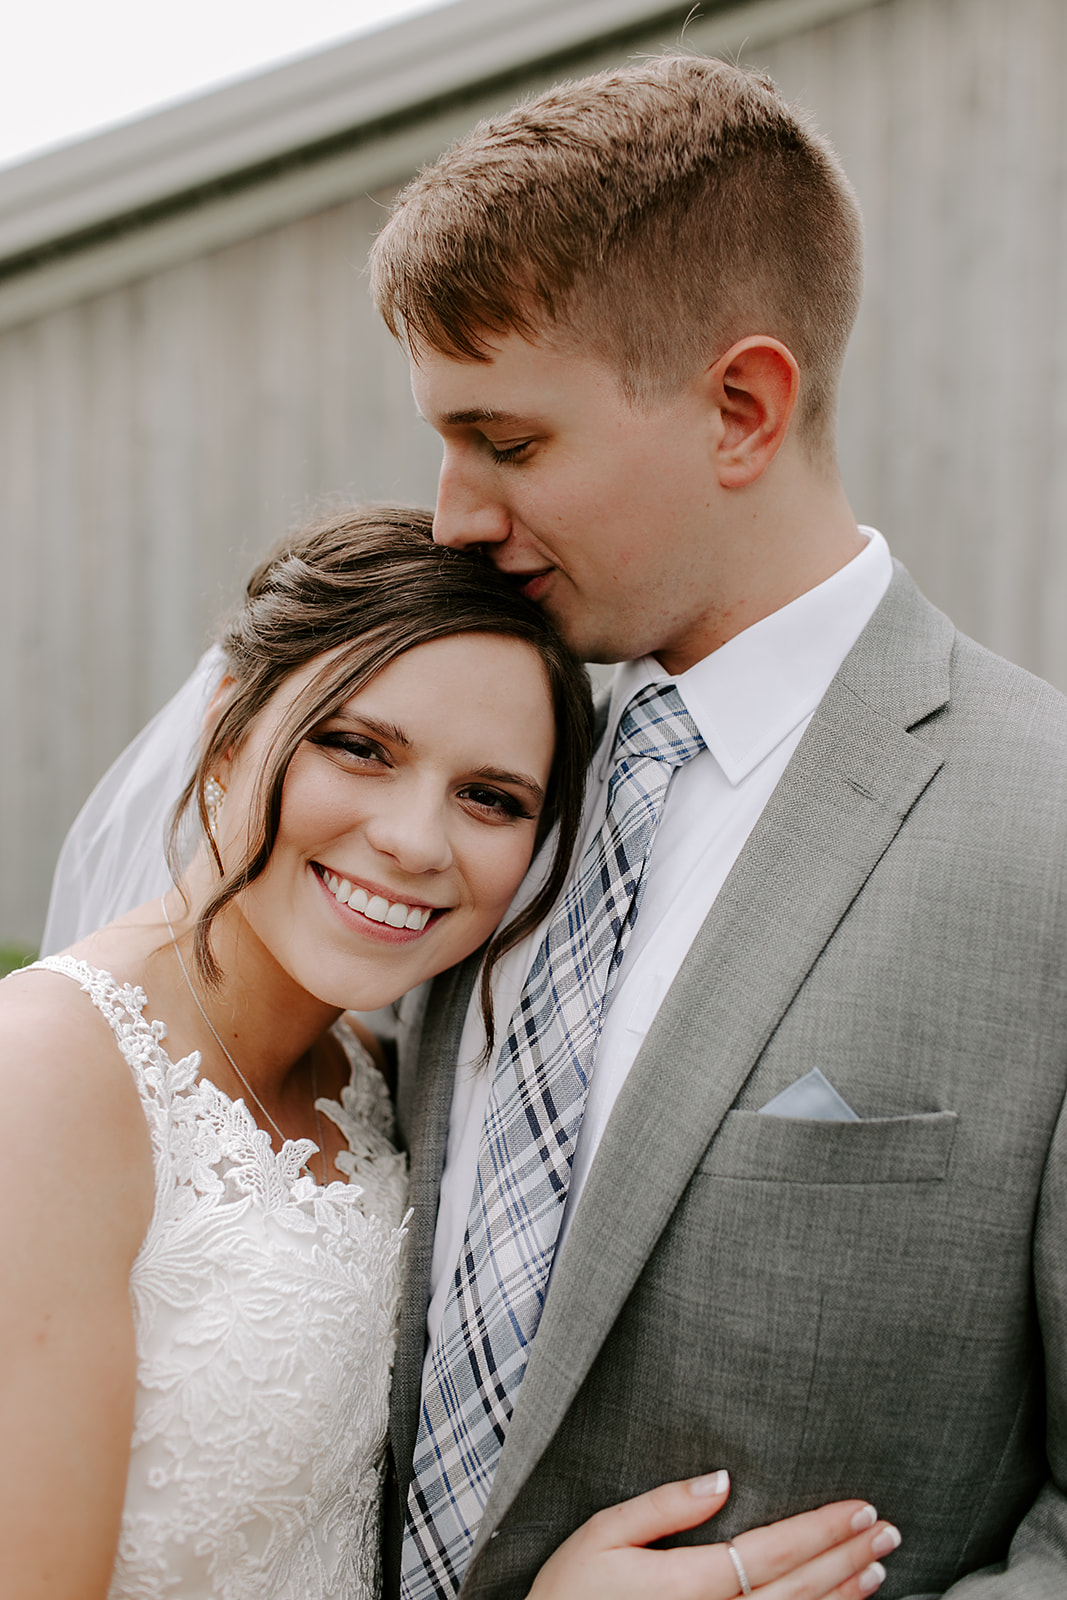 Kendra_and_Mattew_Indiana_Wedding_by_Emily_Wehner-231.jpg